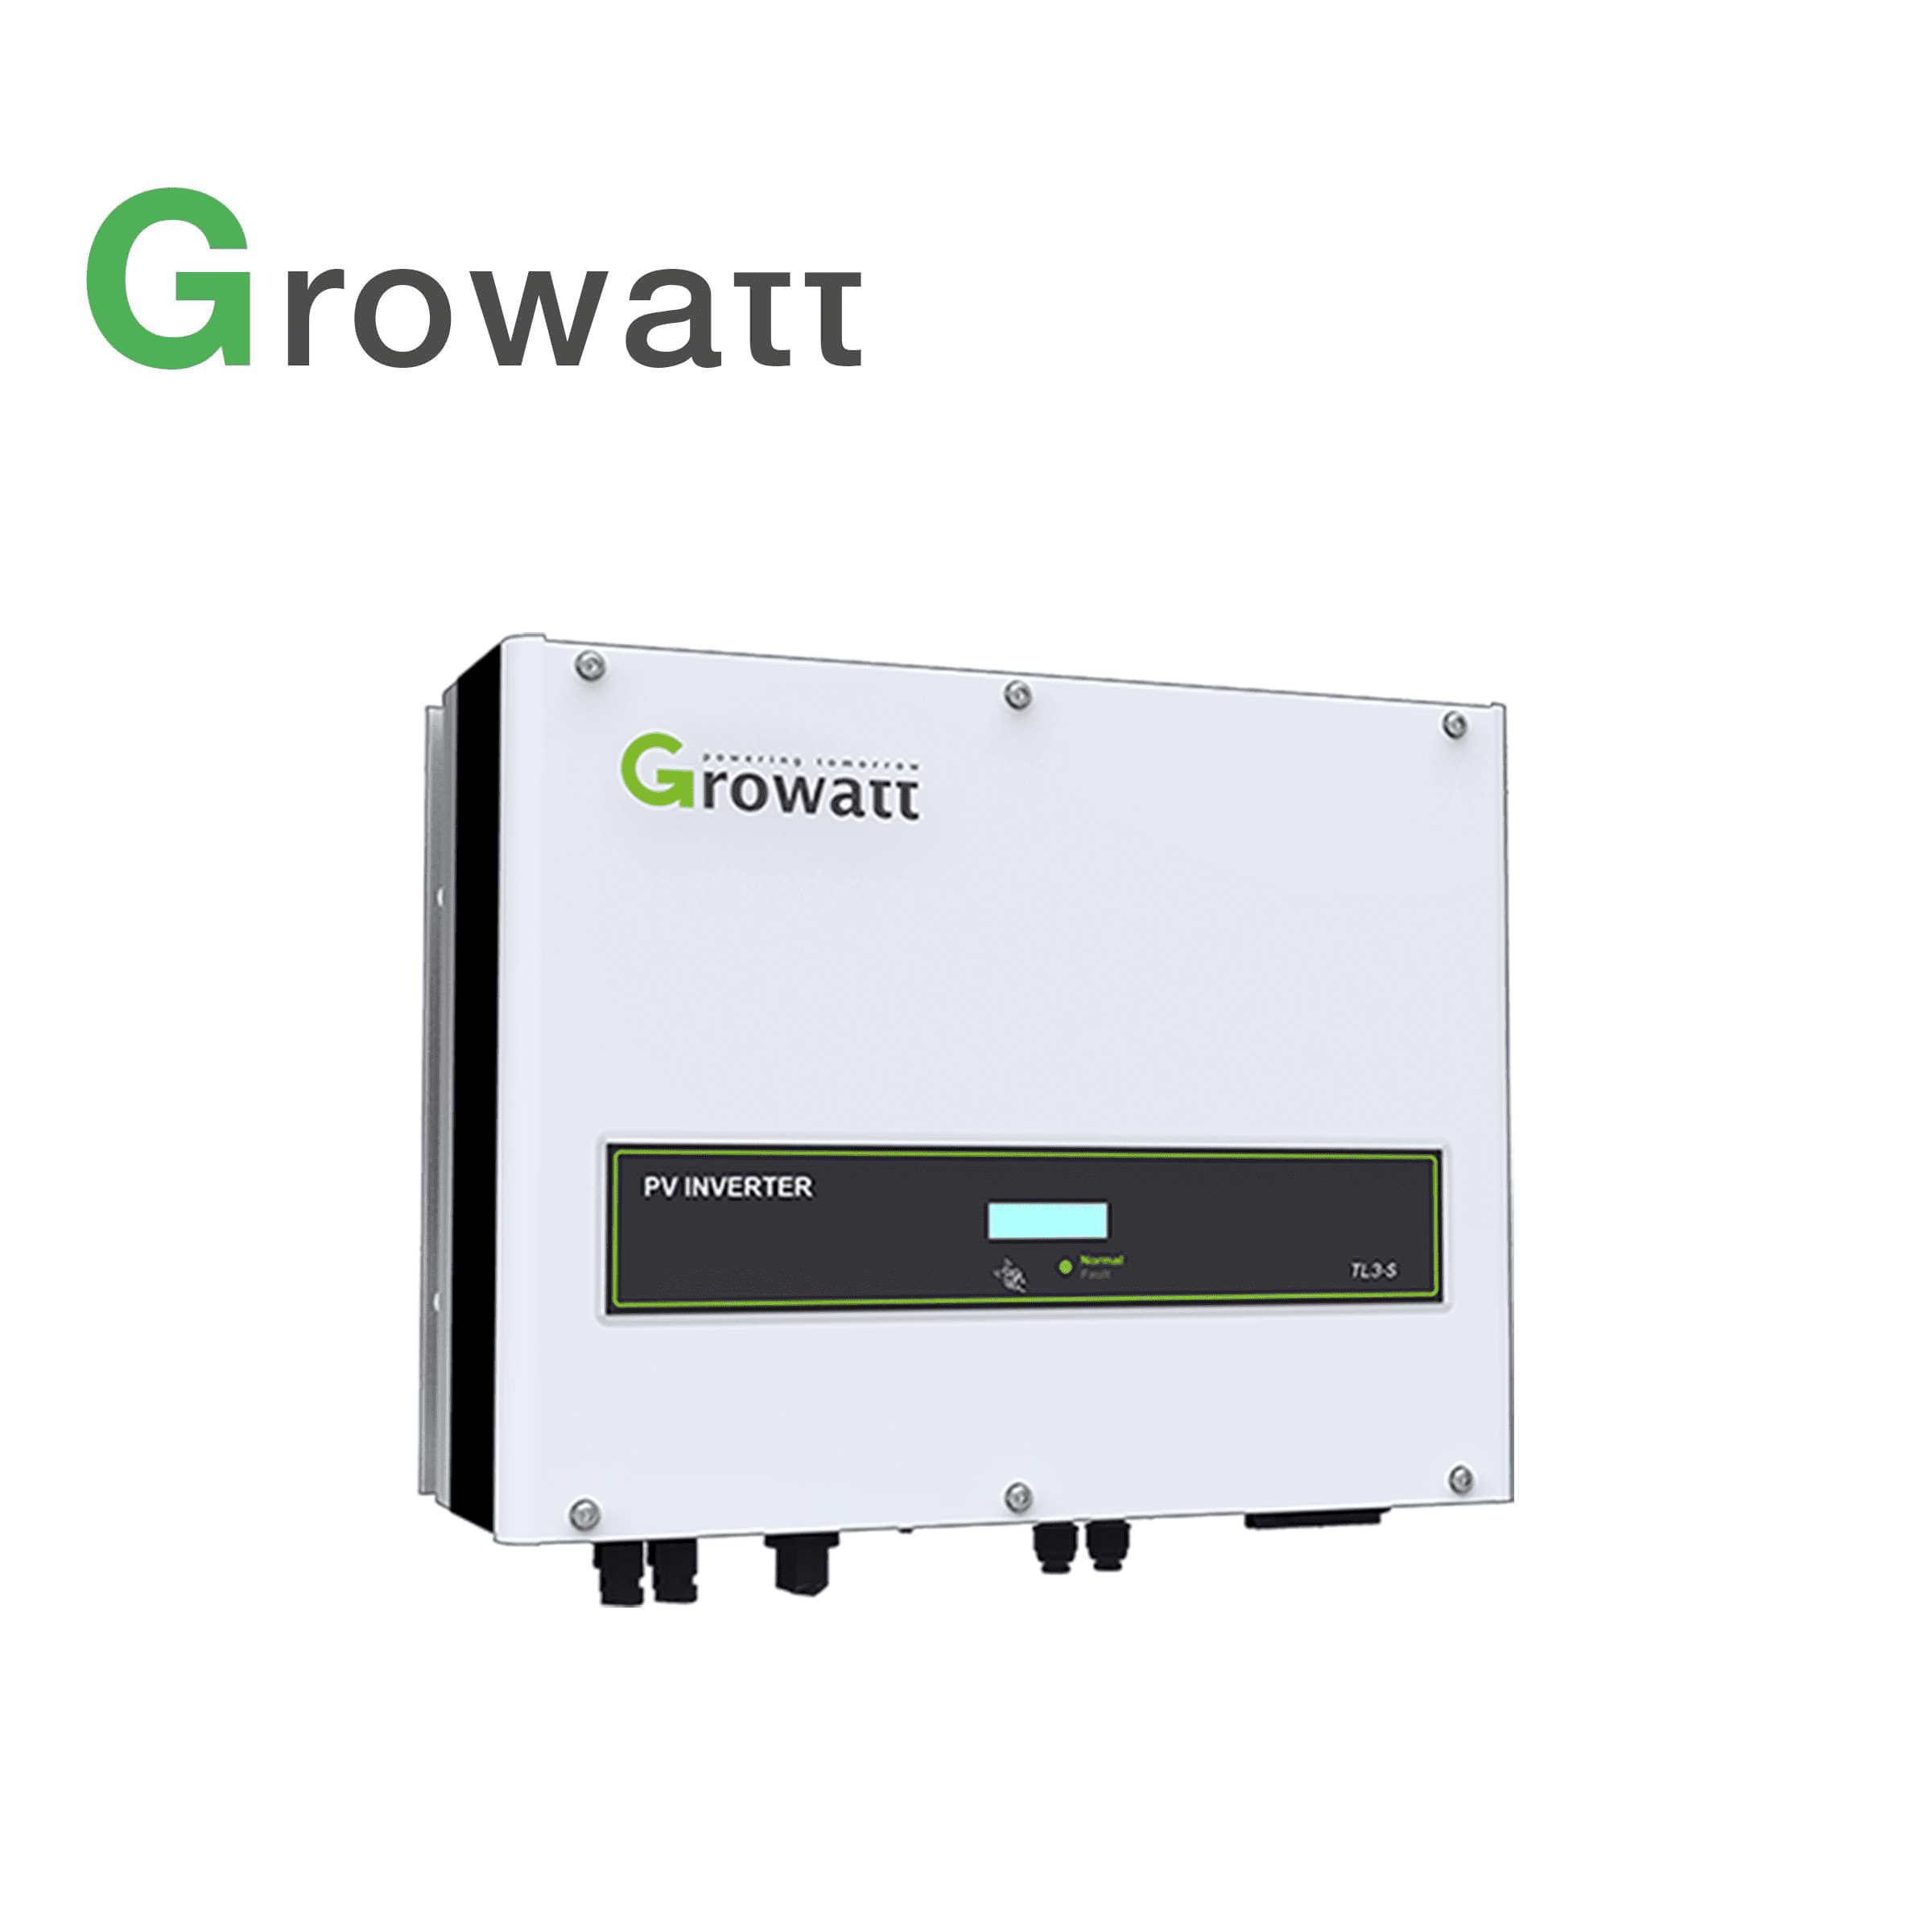 Growatt 8 kilowatt 3 phase inverter